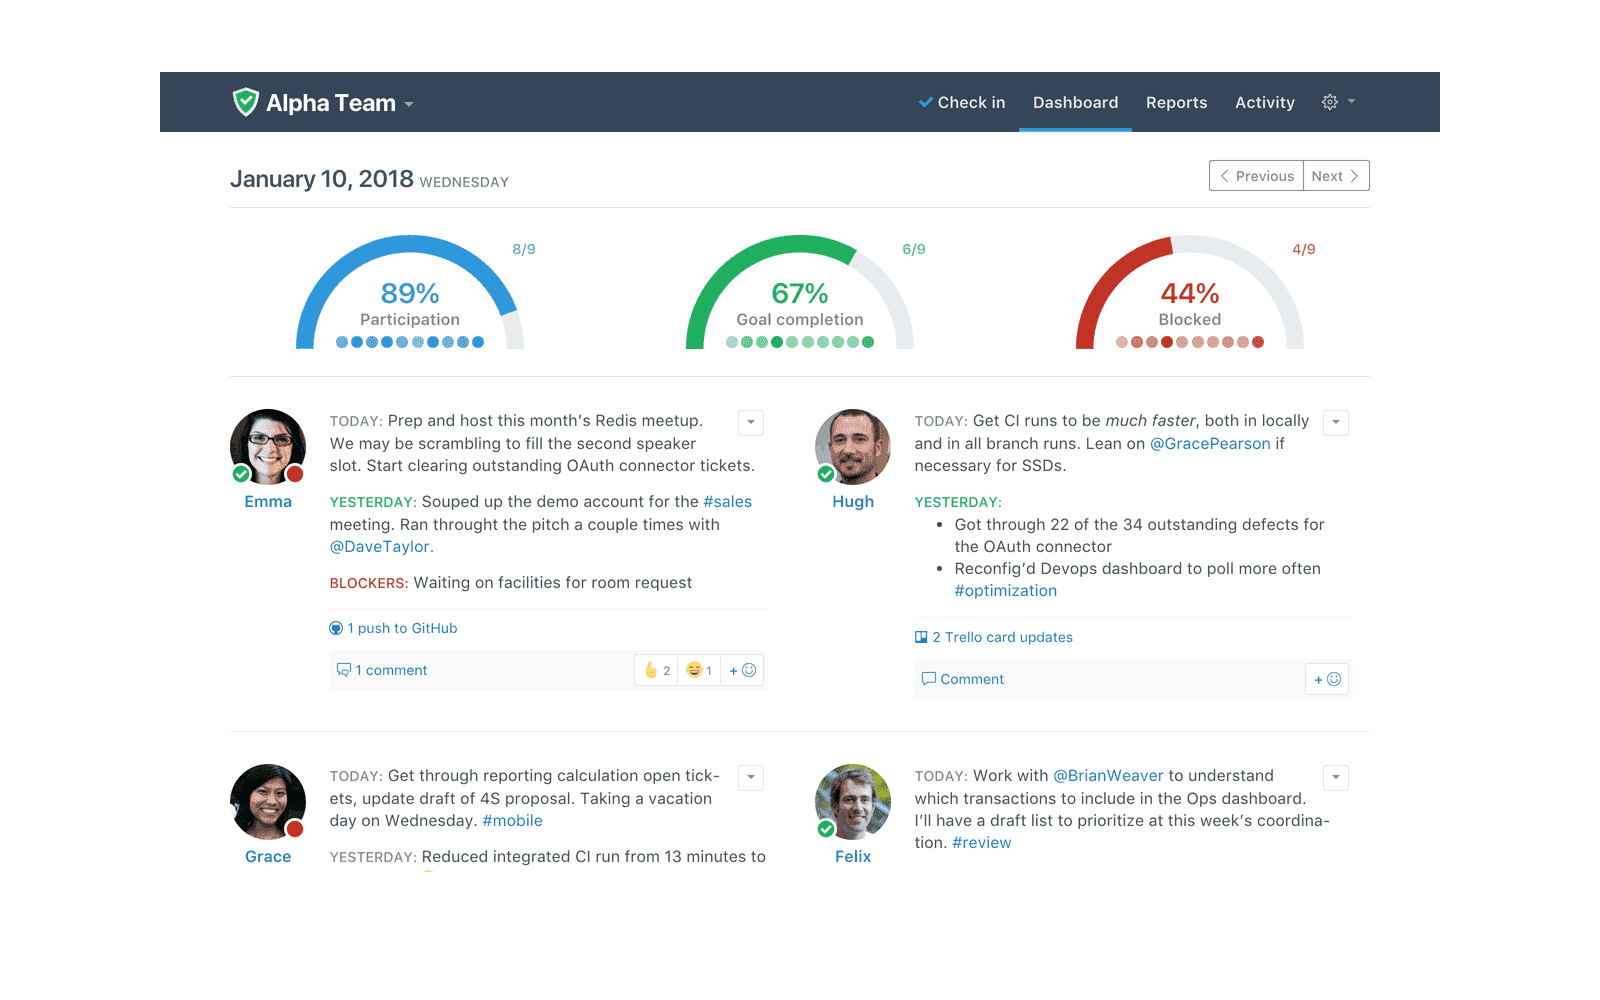 Status Hero Demo - Instantly review daily check-ins, goal completion, and blocking issues